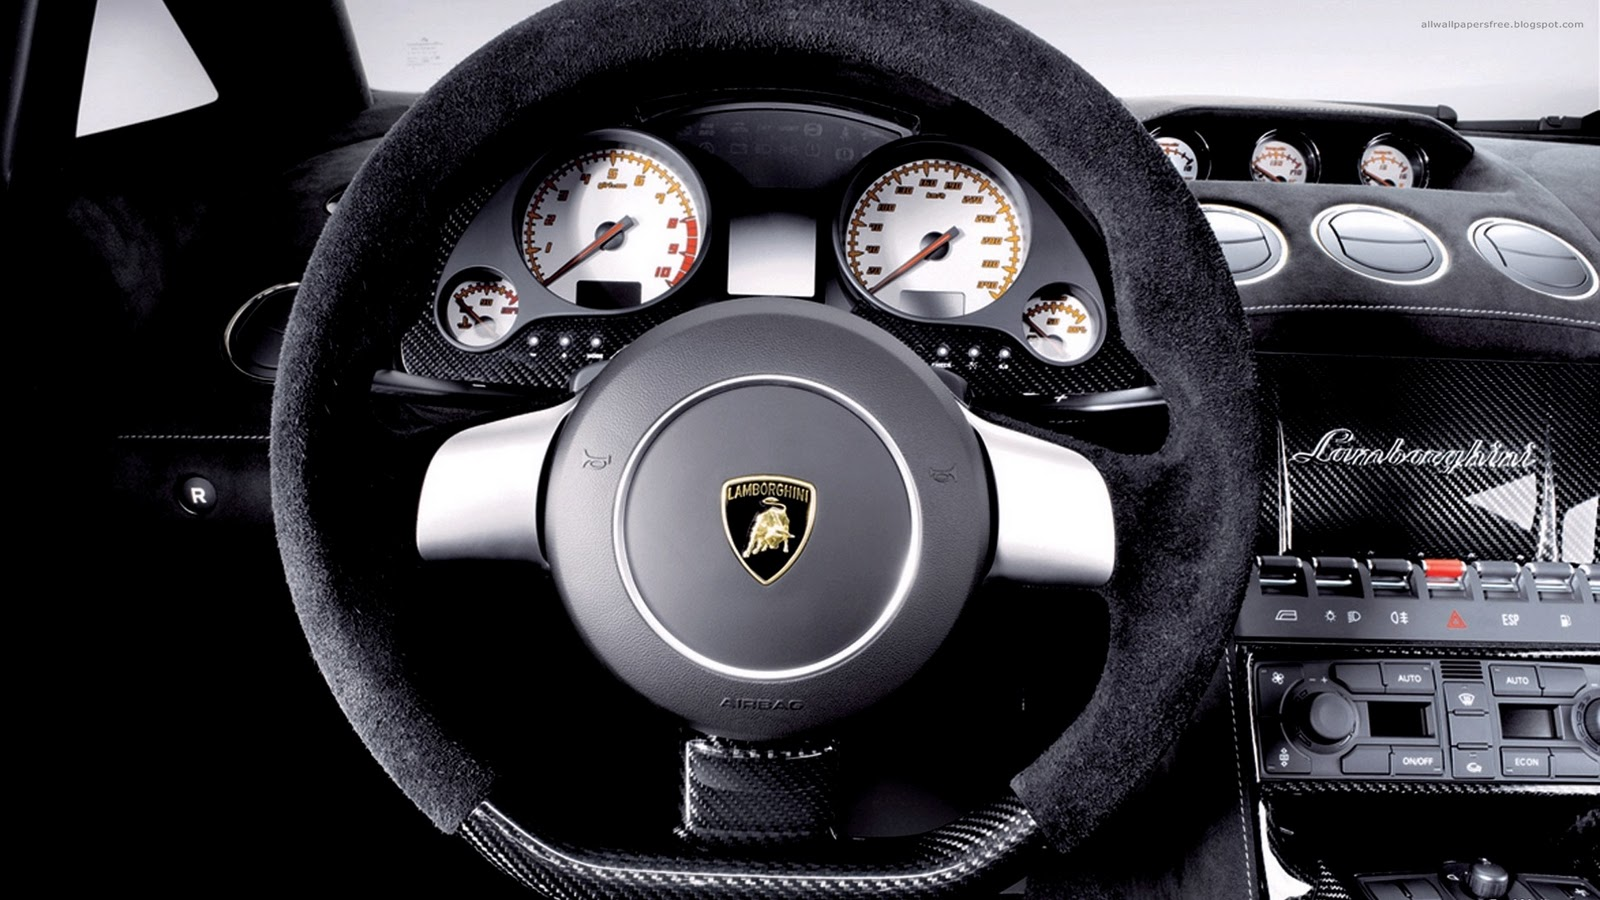 Hd Wallpapers Planet Lamborghini Steering Wheel